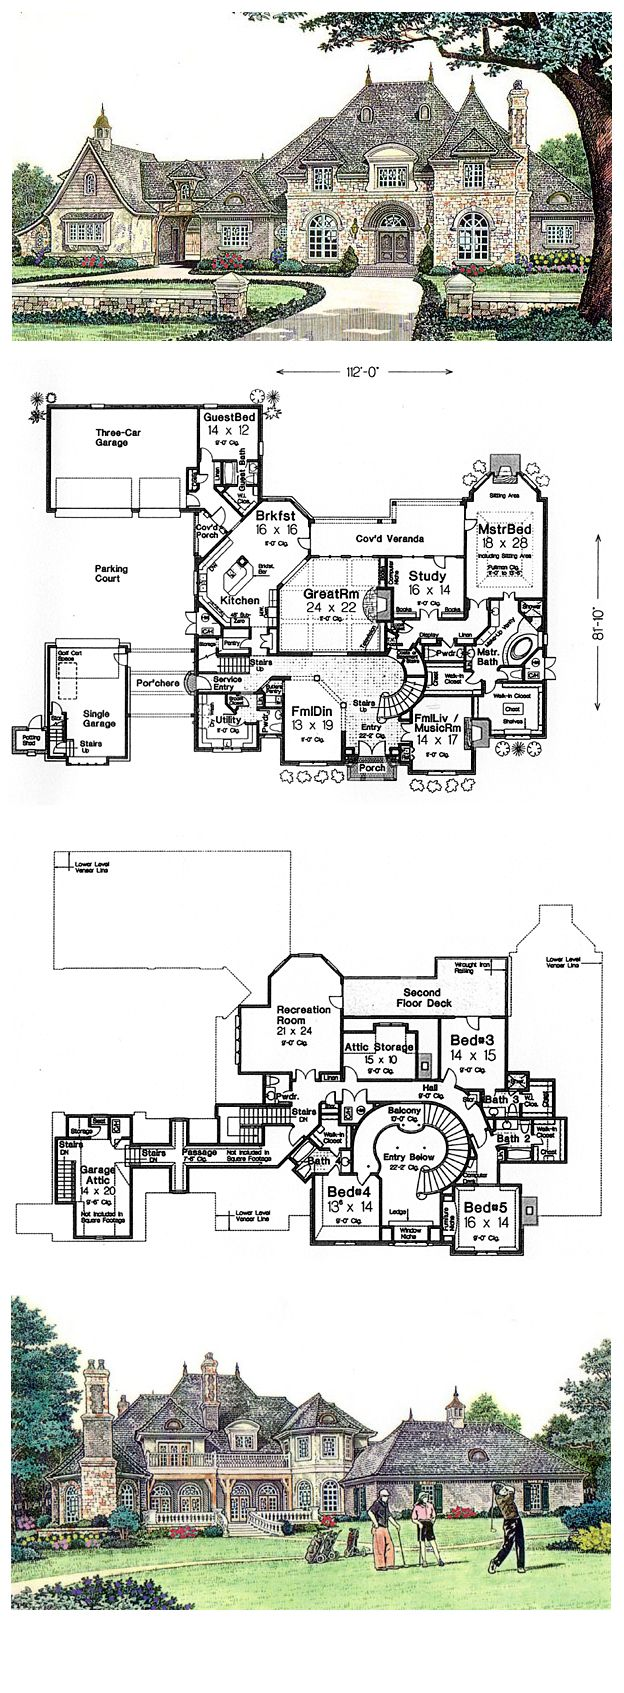 COOL House Plan ID: chp-39871   Total living area: 6274 sq ft, 5 bedrooms & 6 bathrooms. Multiple stairs. Very spacious.